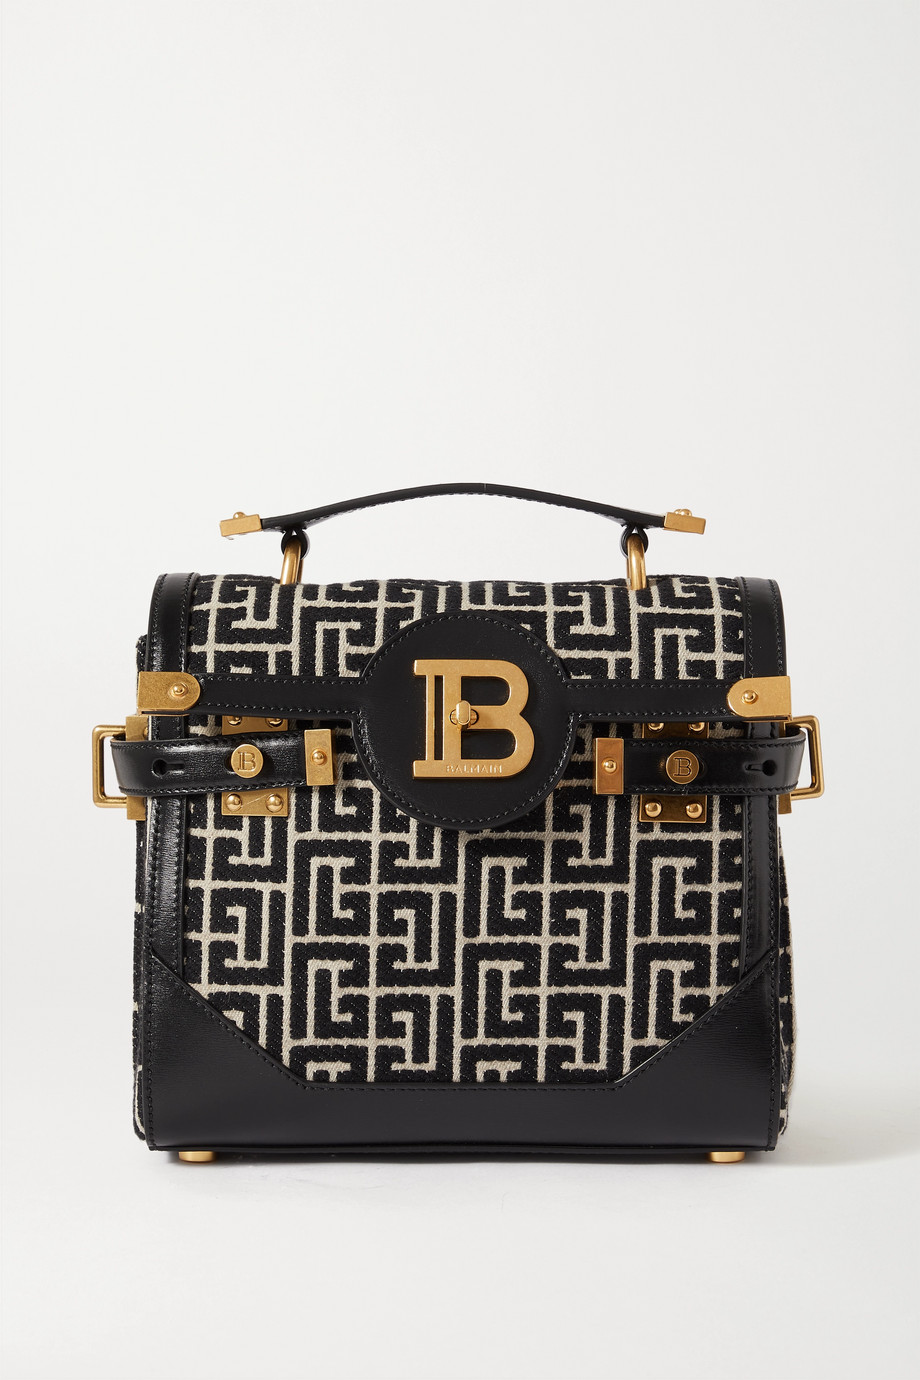 Balmain B-Buzz 23 leather-trimmed jacquard shoulder bag